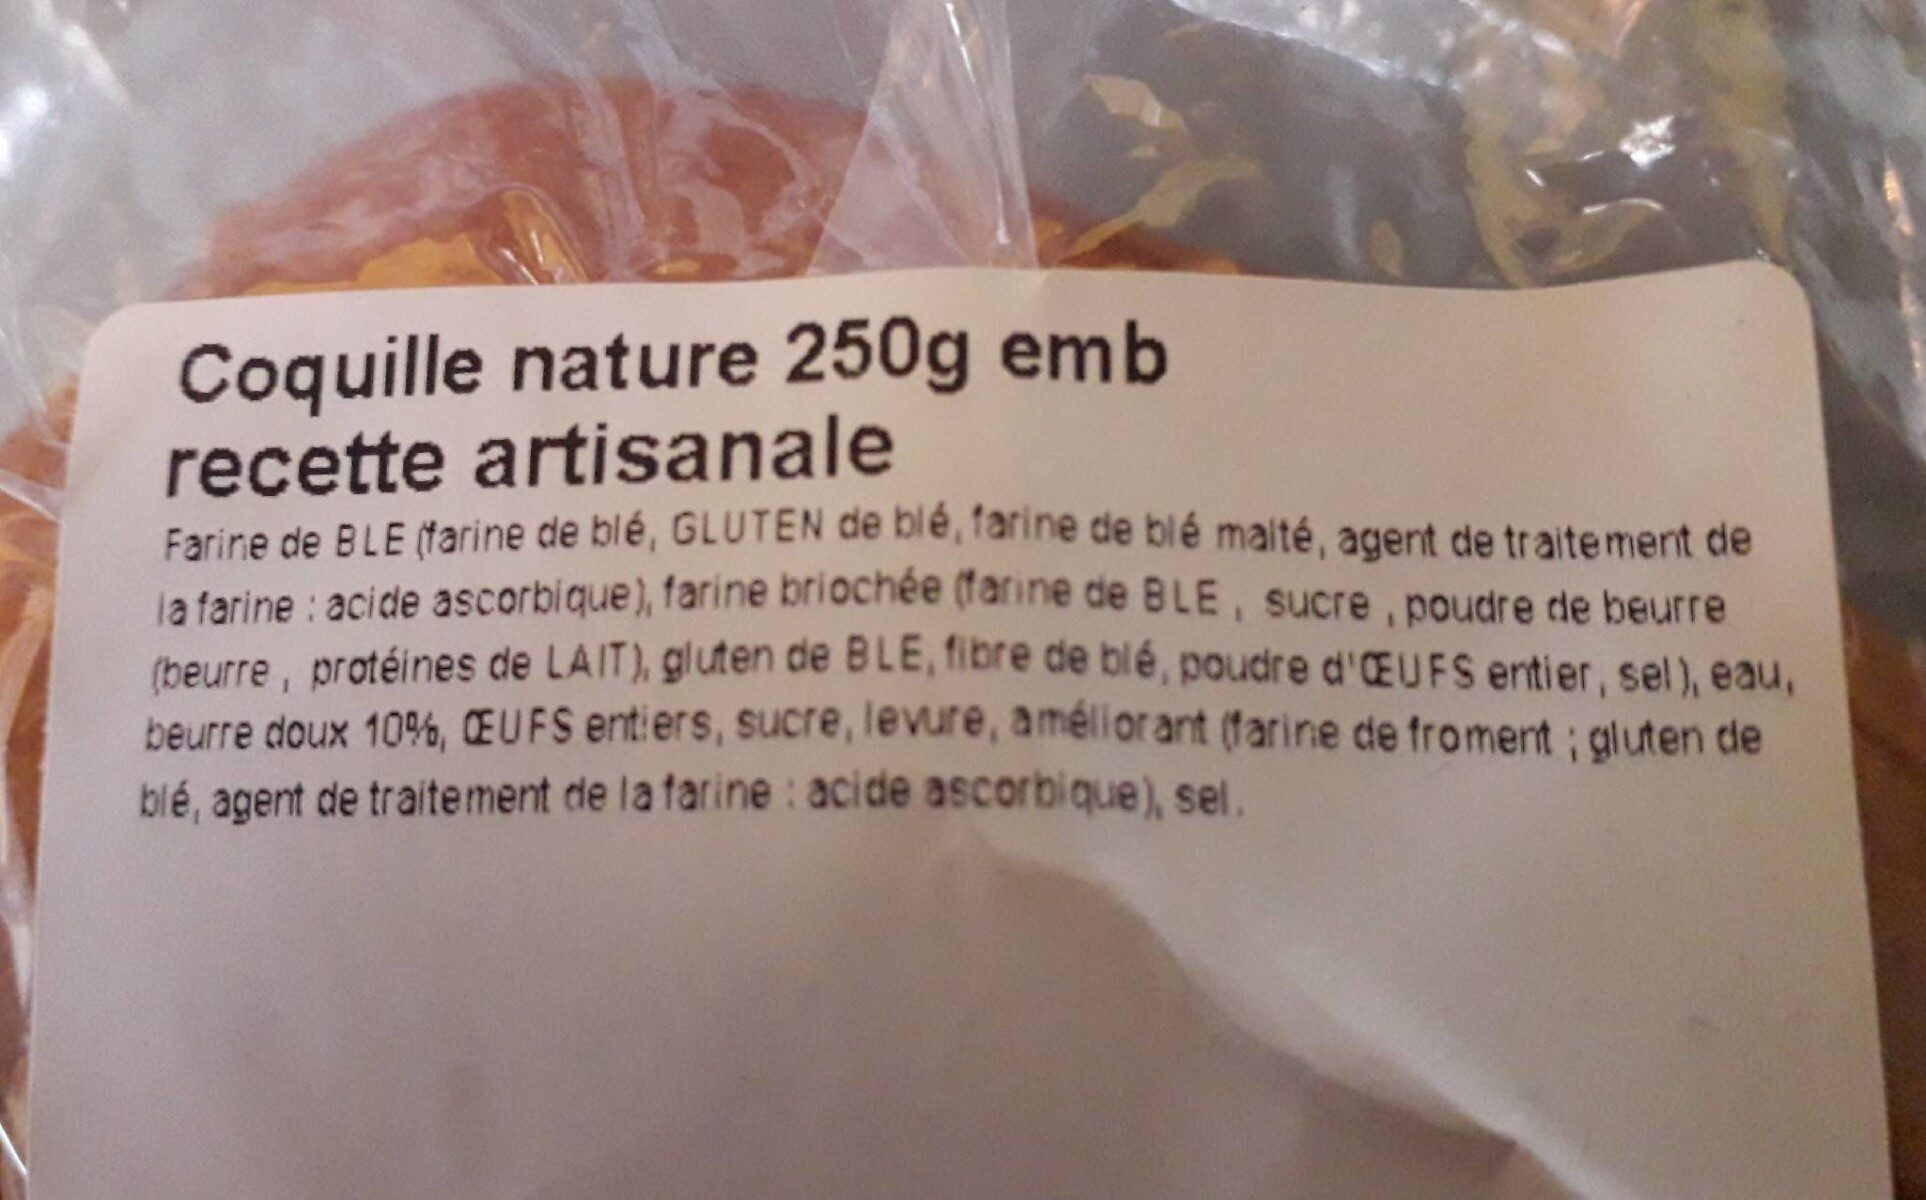 Coquille Nature 250g emb - Informations nutritionnelles - fr